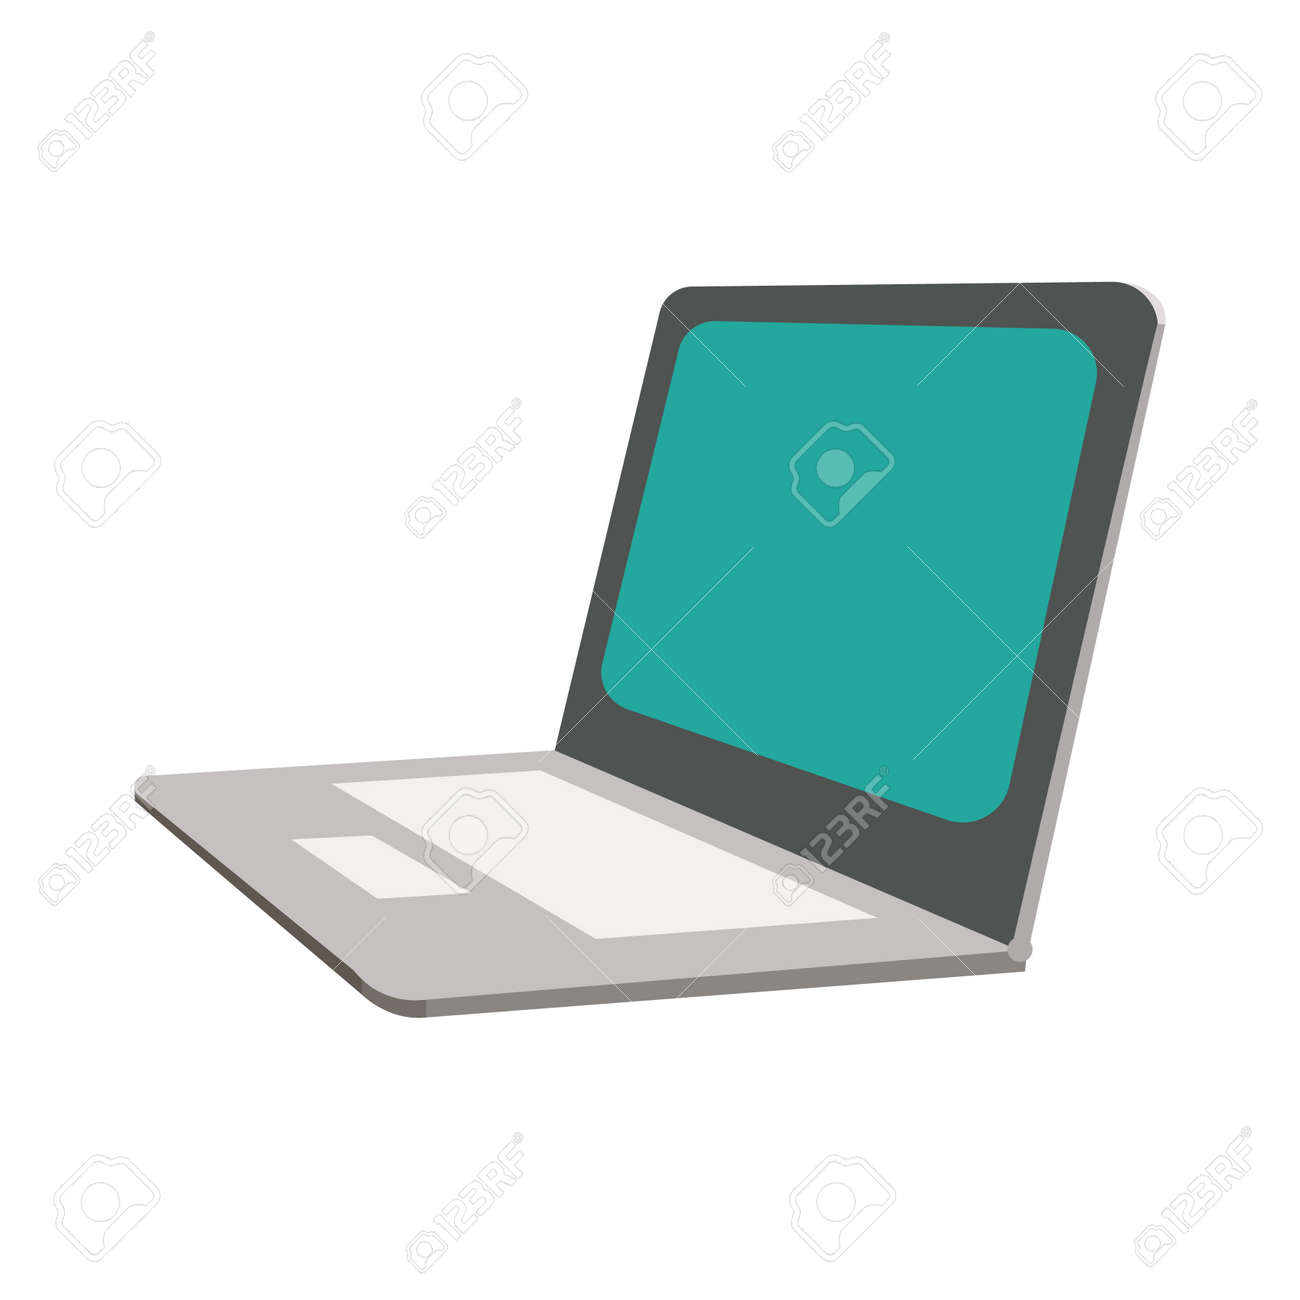 Isolated modern flat vector illustration of a laptop computer. Checking internet via computer. Concept for business scenes. - 154332840